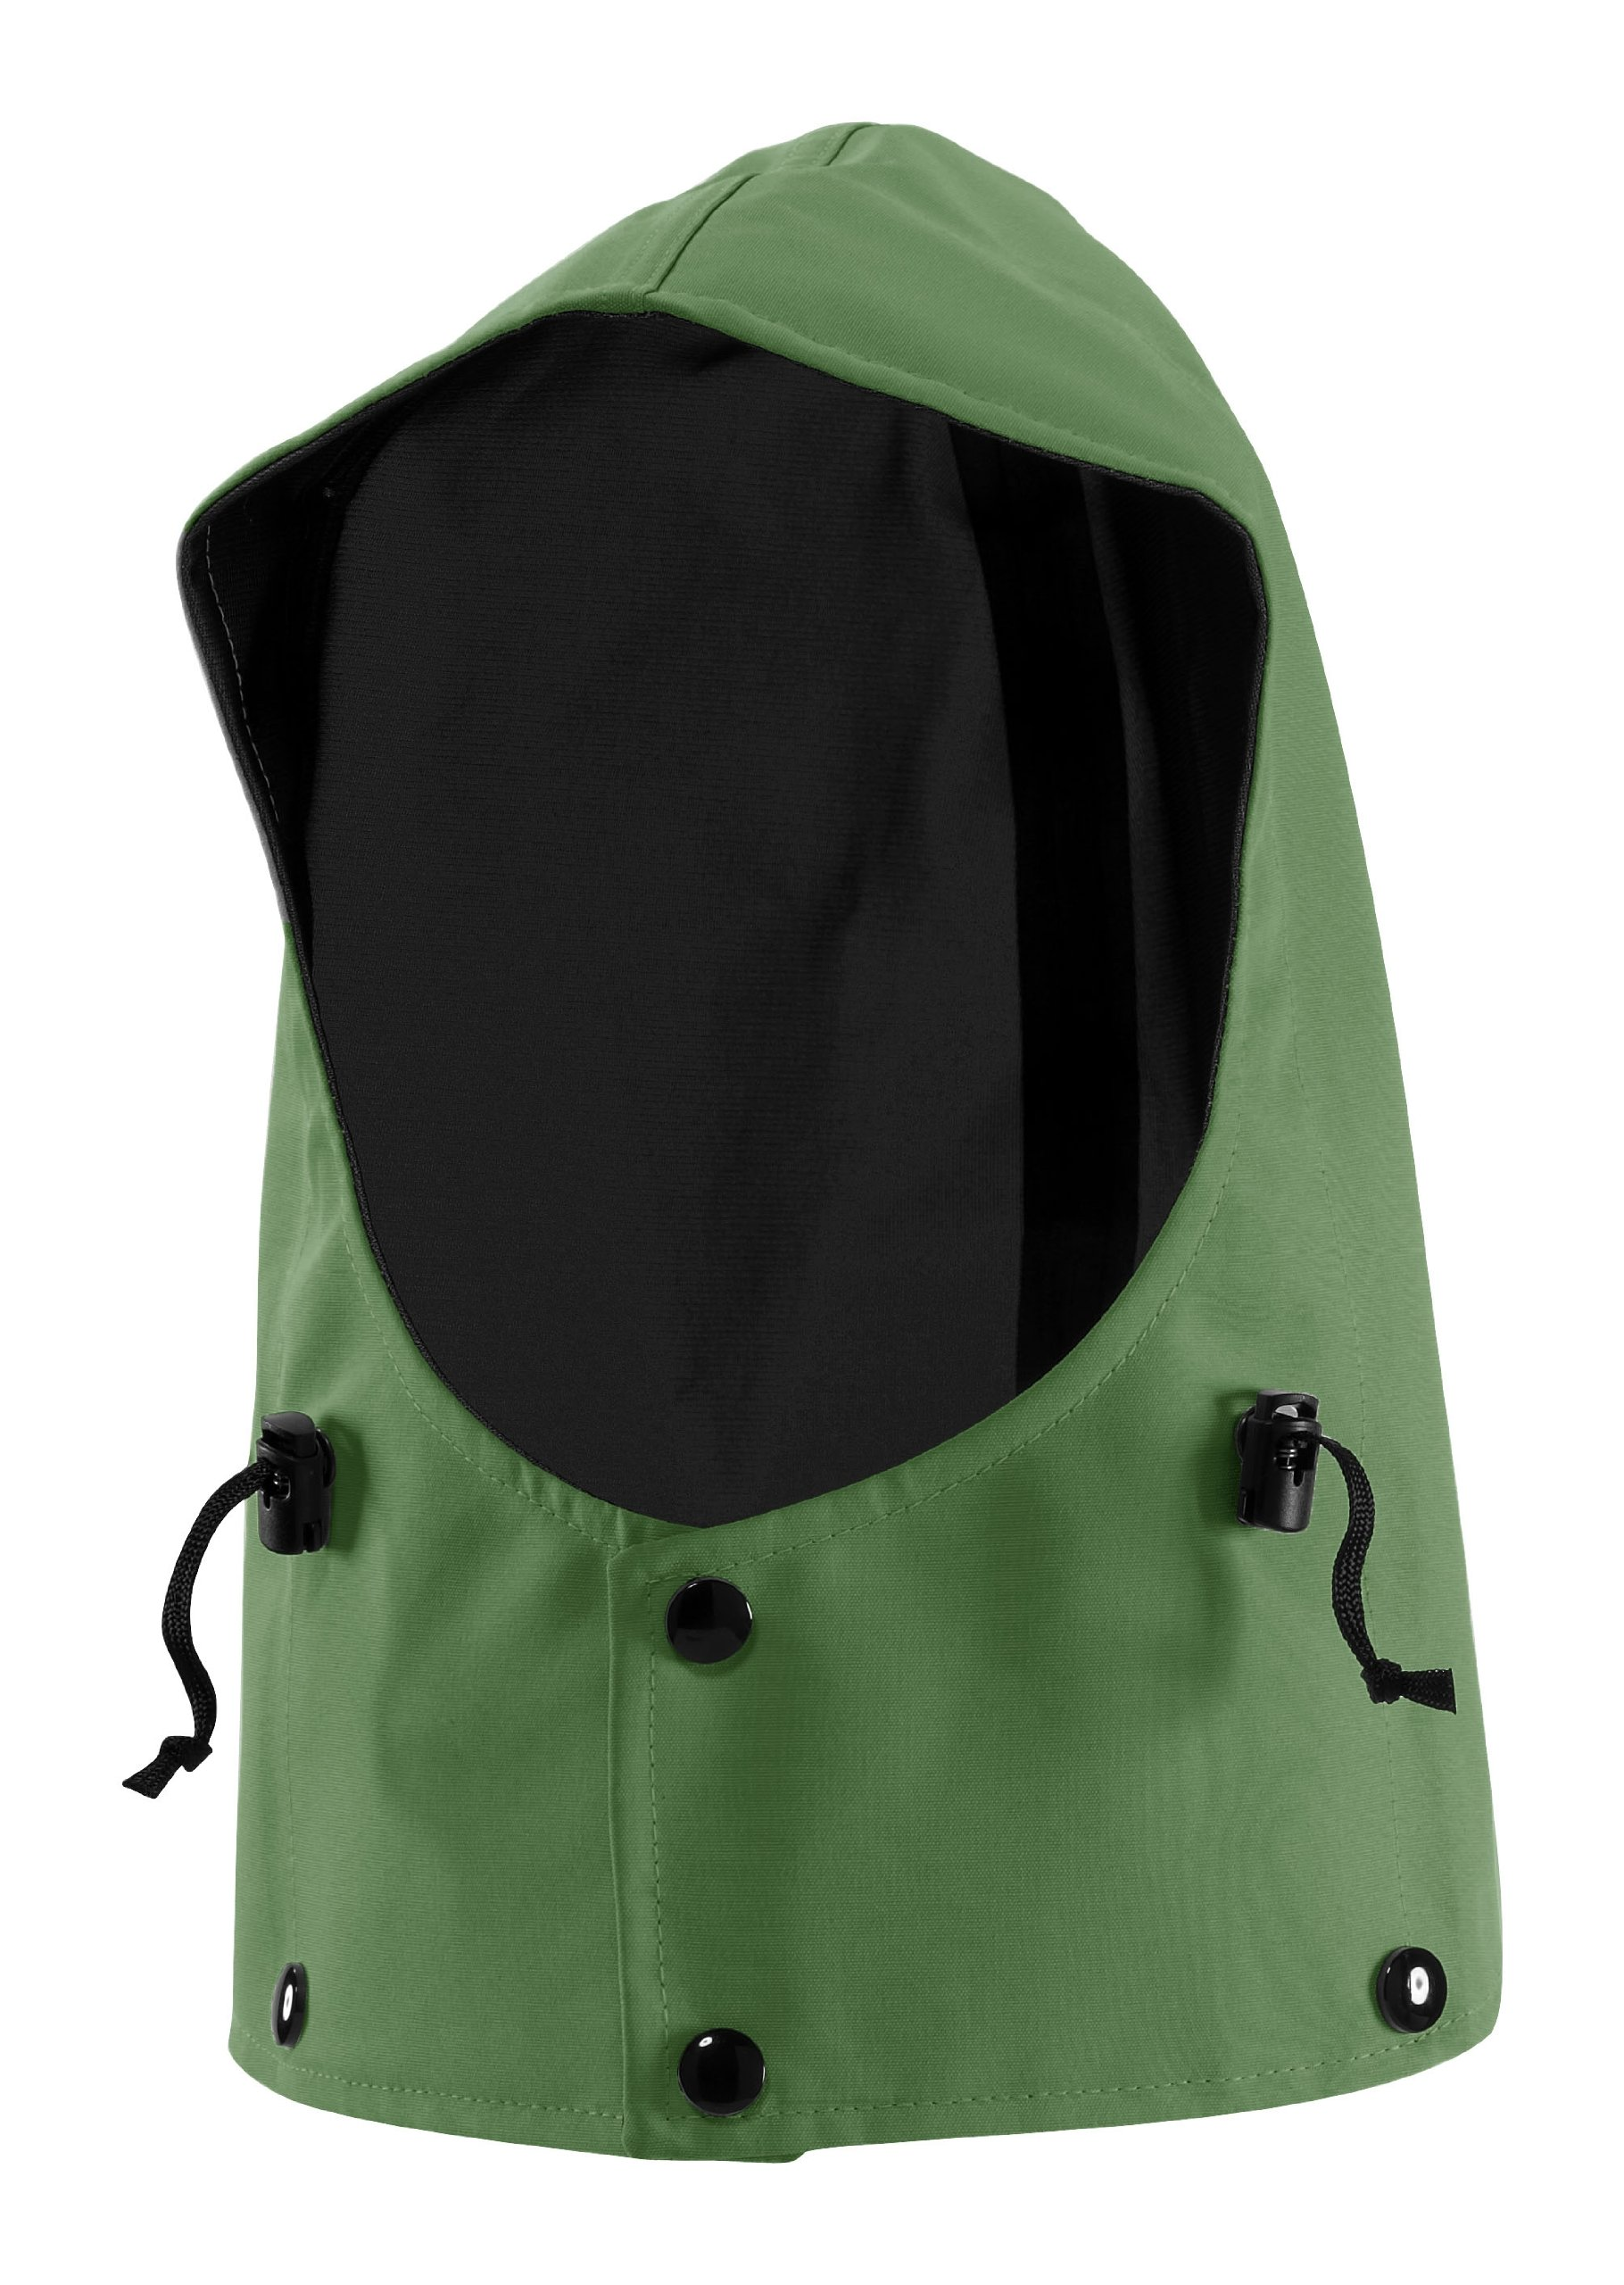 WaterShed 975041-TGR-LGE StormShield Waterproof Snap on GORE-TEX Hood, Large, Forest Green